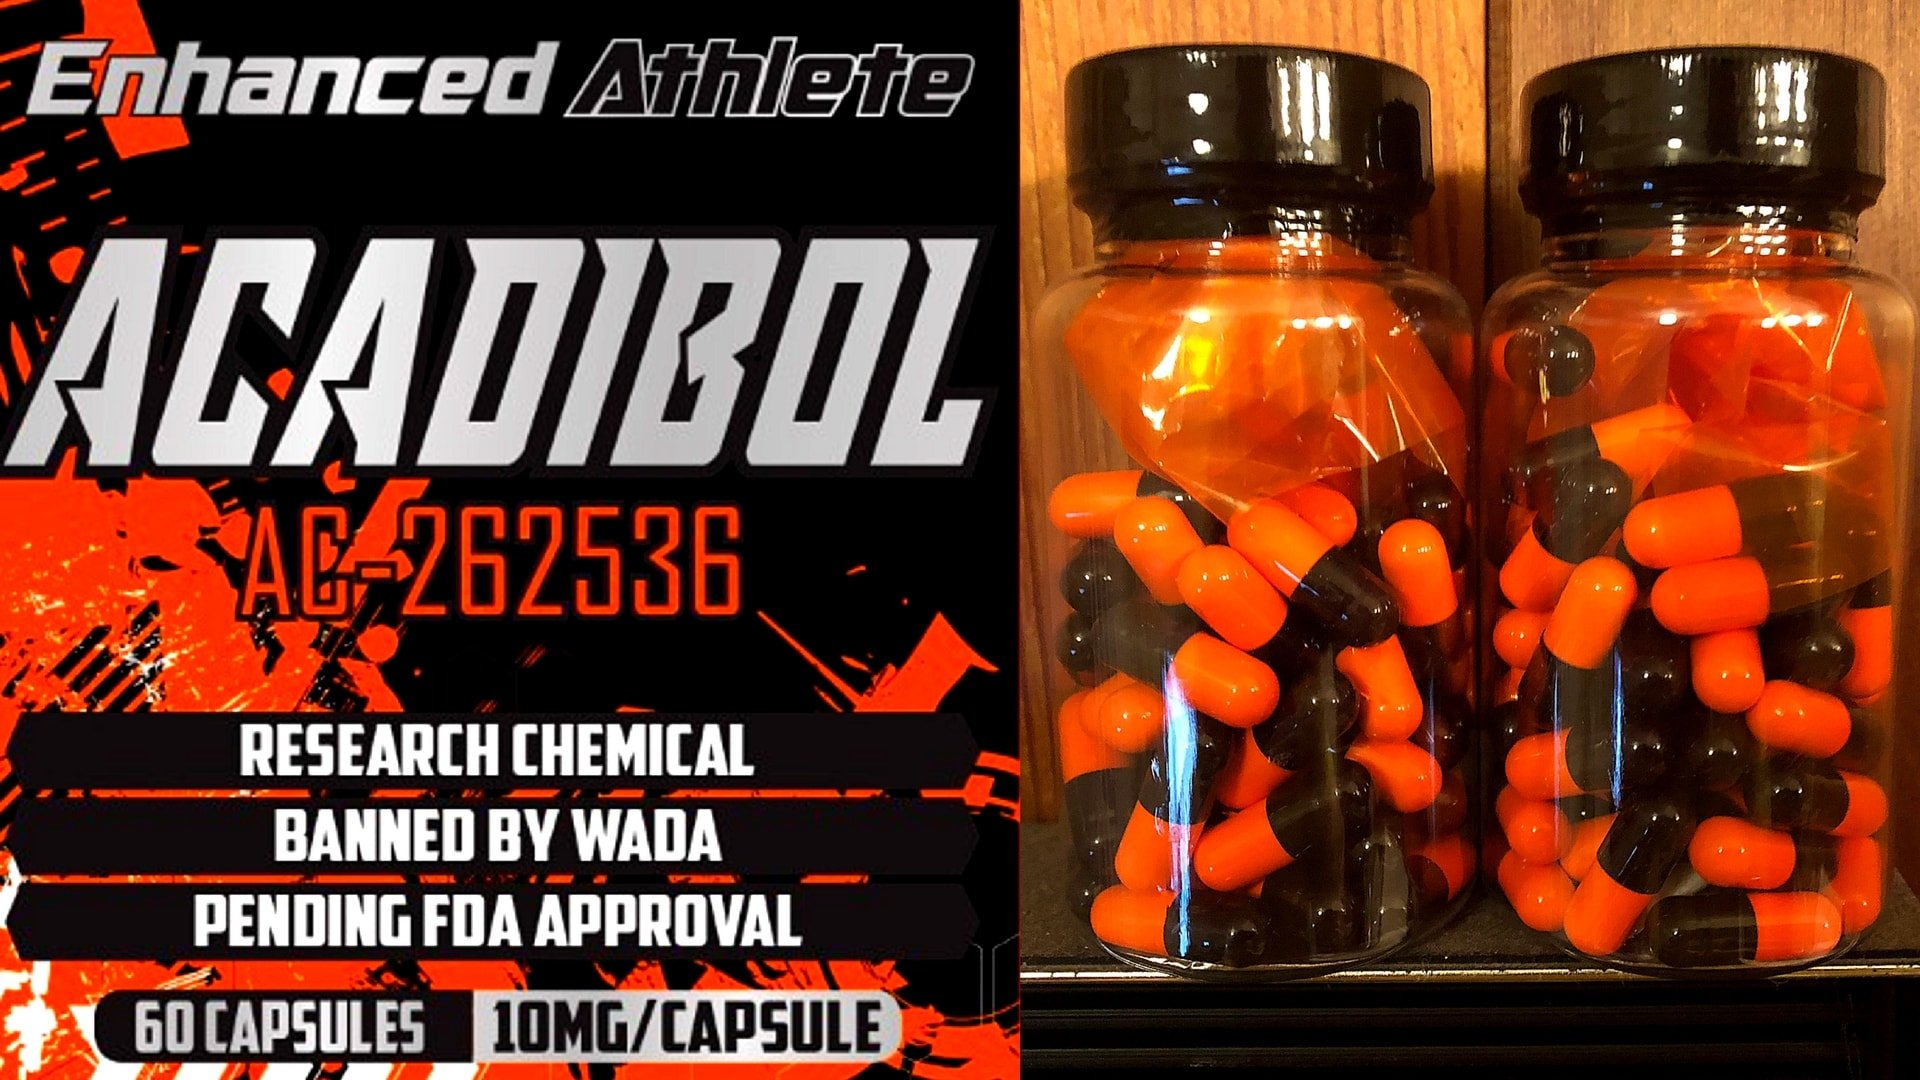 SARMS - Acadibol - 10mg - AC-262536 - (60 Caps) - Enhanced Athlete